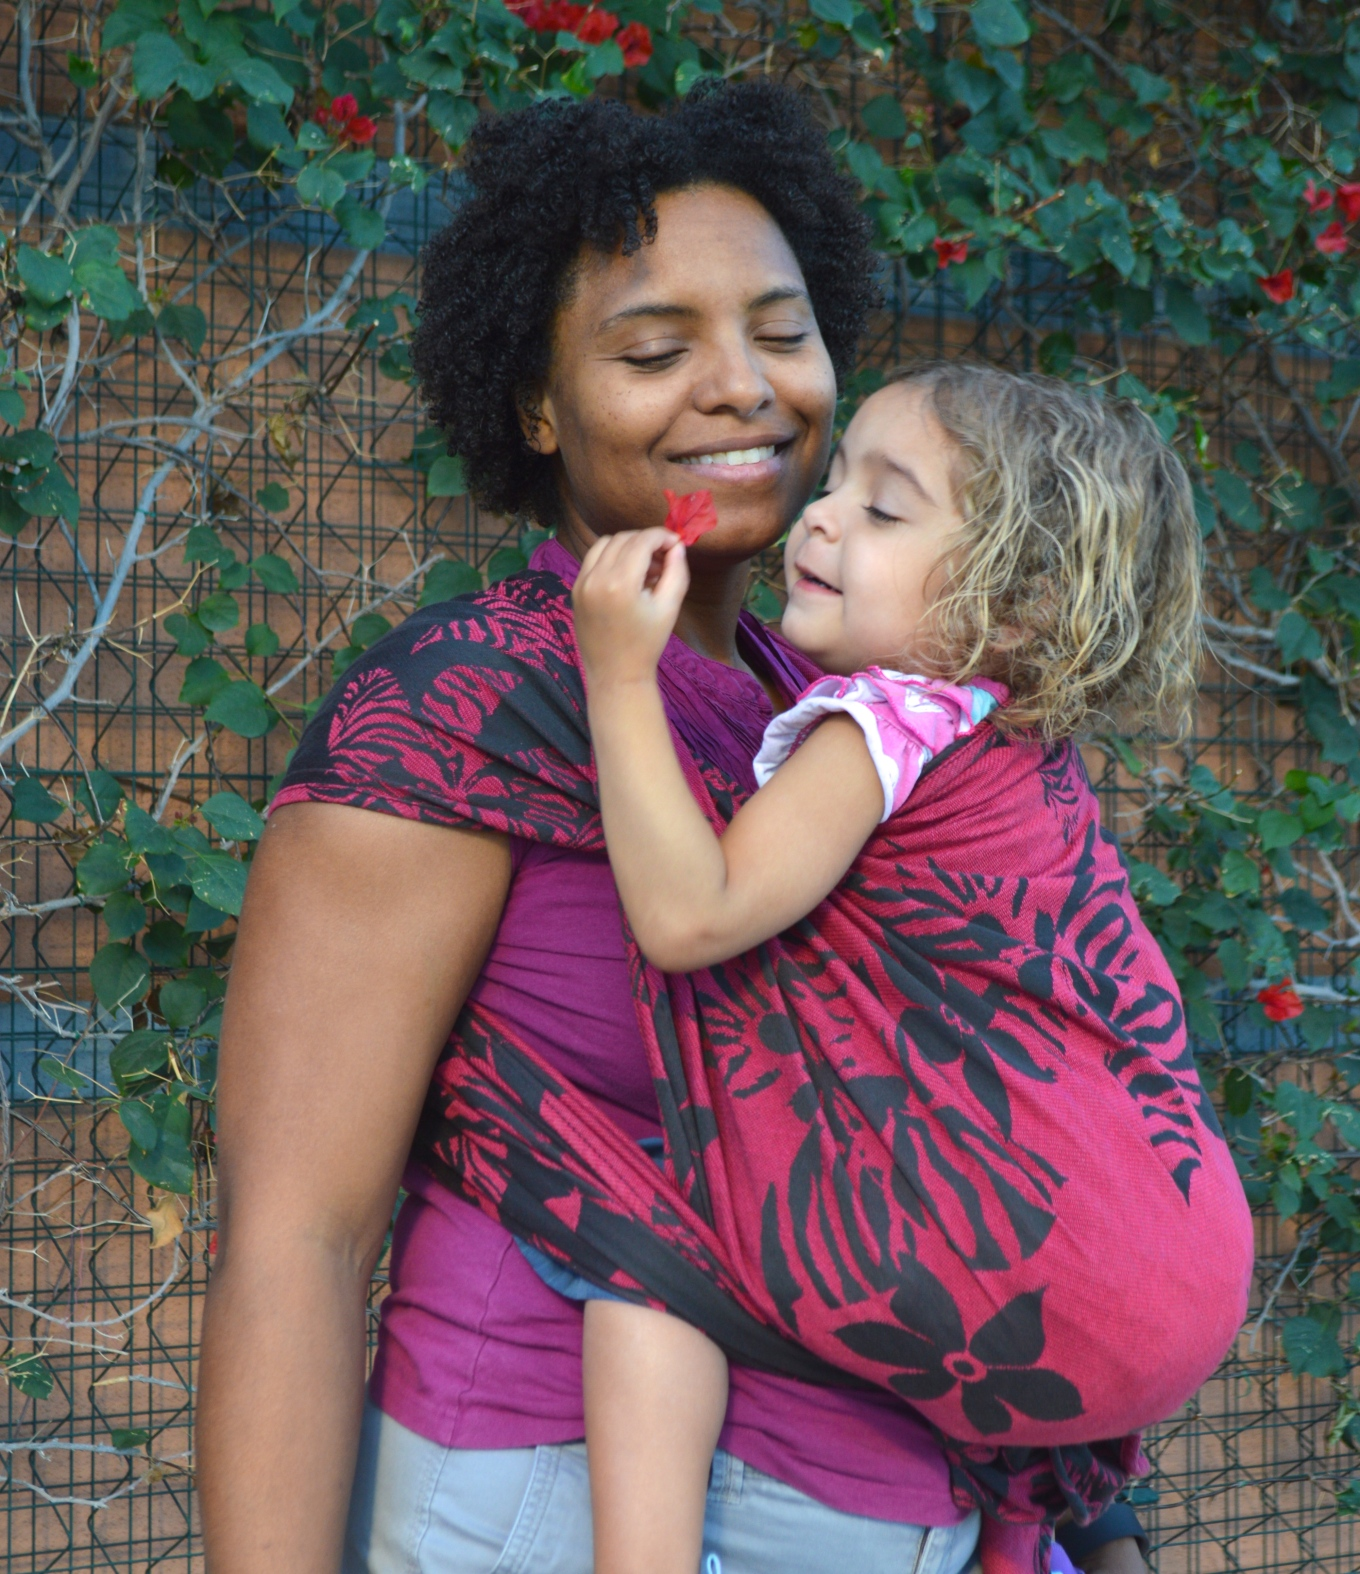 Momma smiles at baby holding magenta flowers in a front carry in a magenta wrap with black flowers